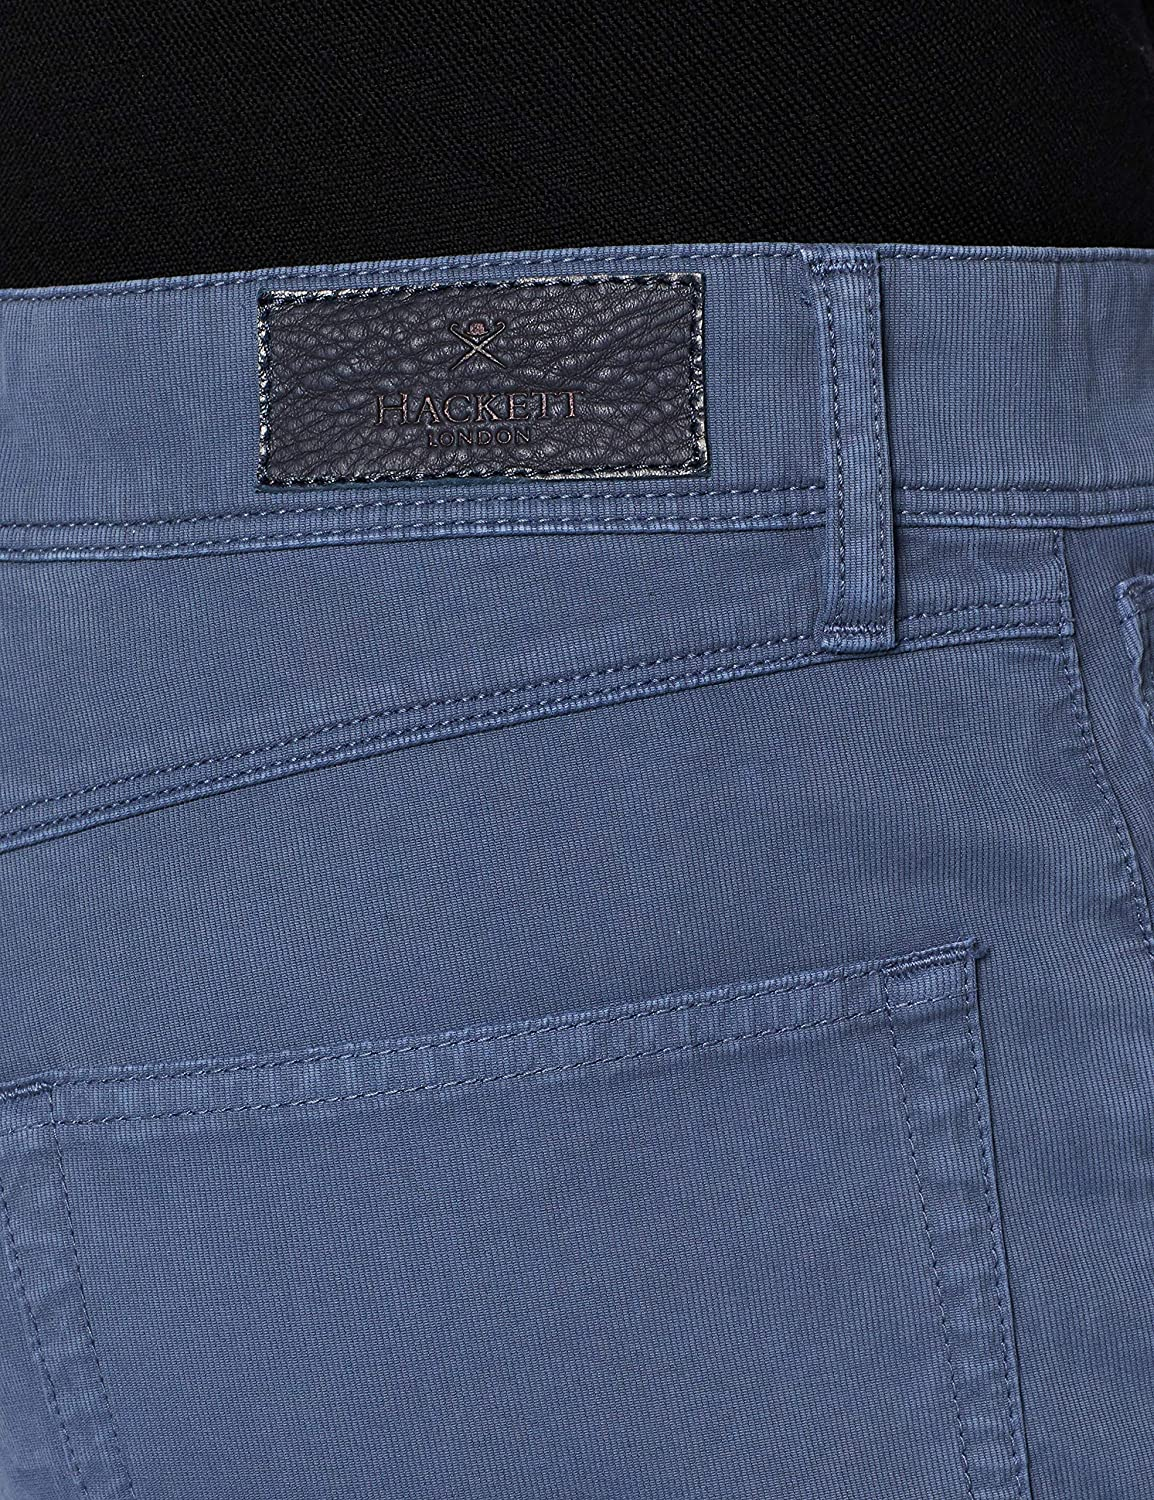 Hackett 5 Pocket Texture Jean Droit Homme Silverfish